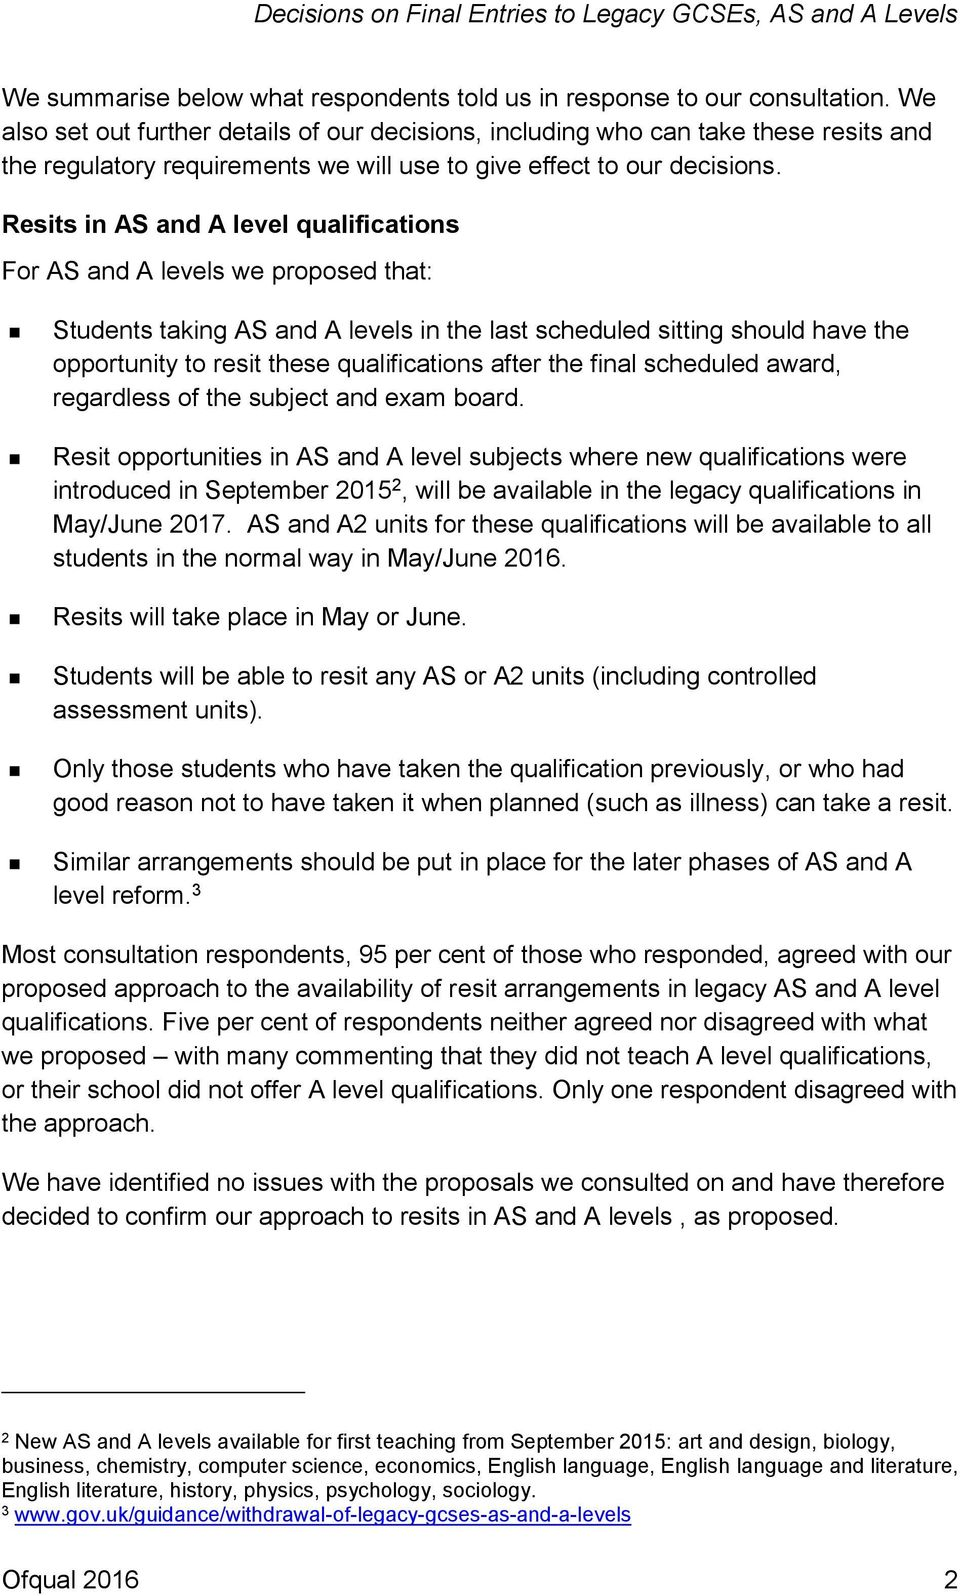 Resits in AS and A level qualifications For AS and A levels we proposed that: Students taking AS and A levels in the last scheduled sitting should have the opportunity to resit these qualifications